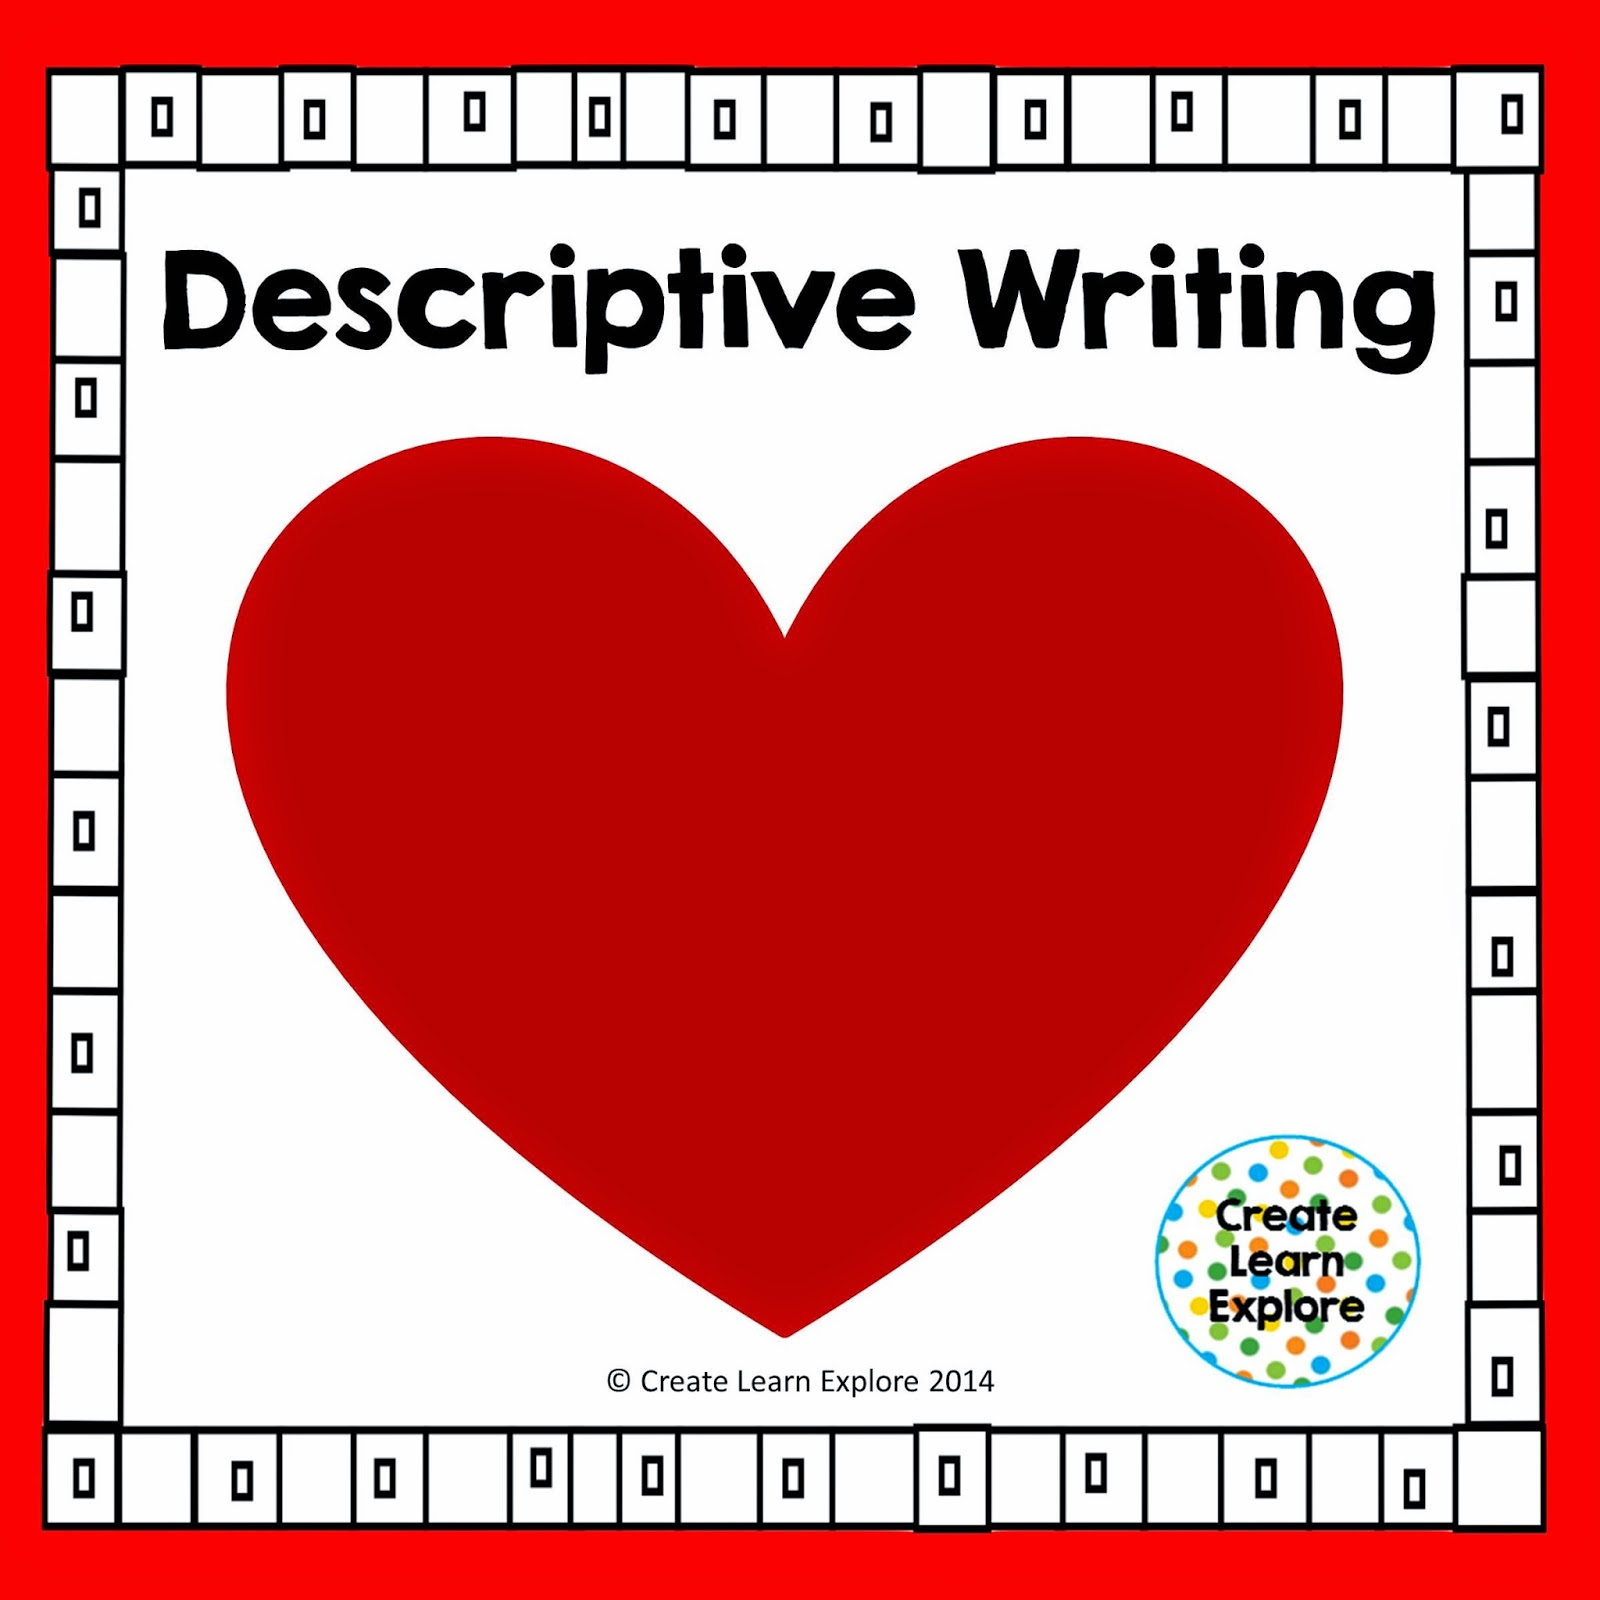 https://www.teacherspayteachers.com/Product/Descriptive-Writing-Valentines-1679006